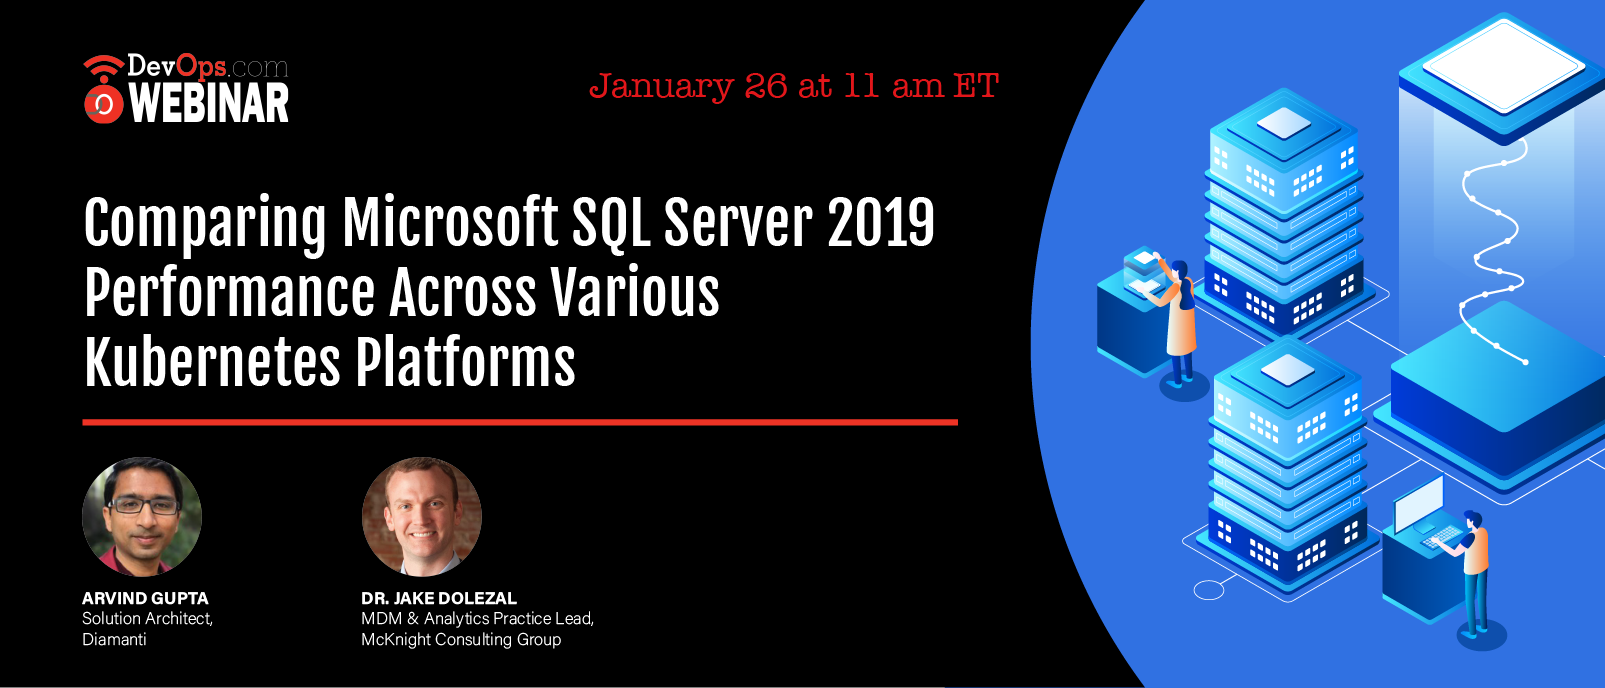 Comparing Microsoft SQL Server 2019 Performance Across Various Kubernetes Platforms